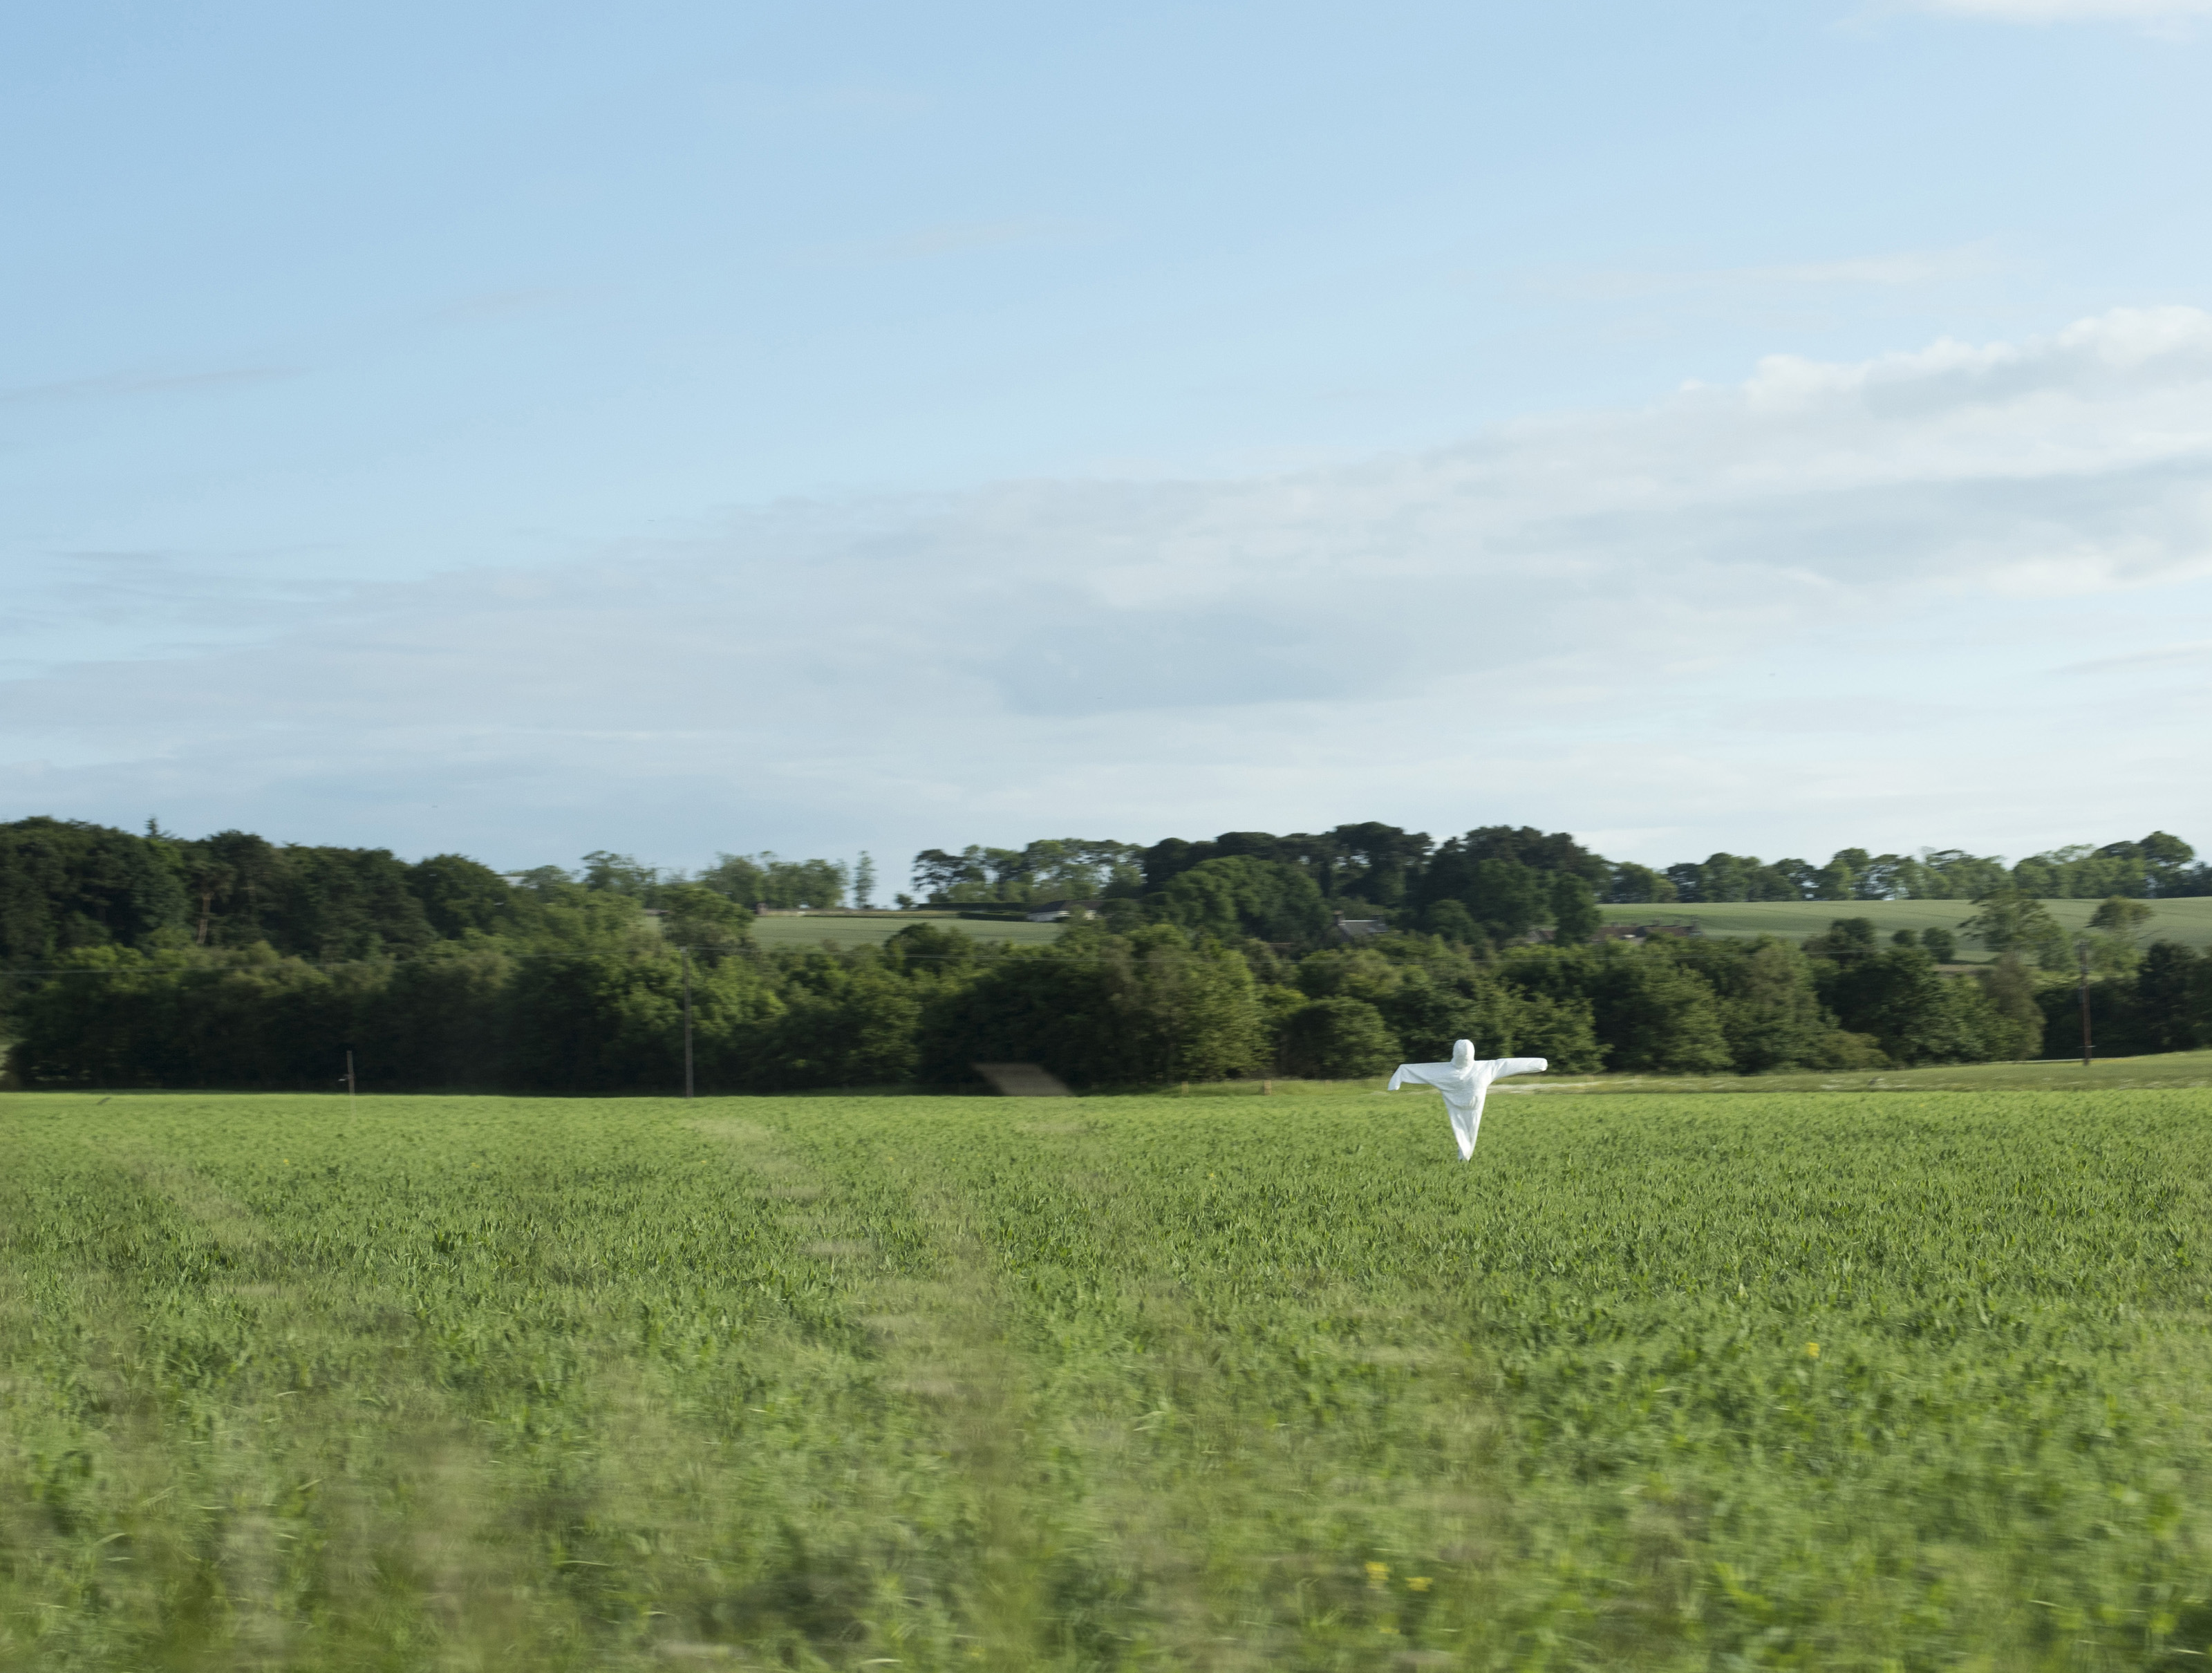 Agricultural field with a white scarecrow to frighten away the crows from a ripening crop in a rural landscape with copy space